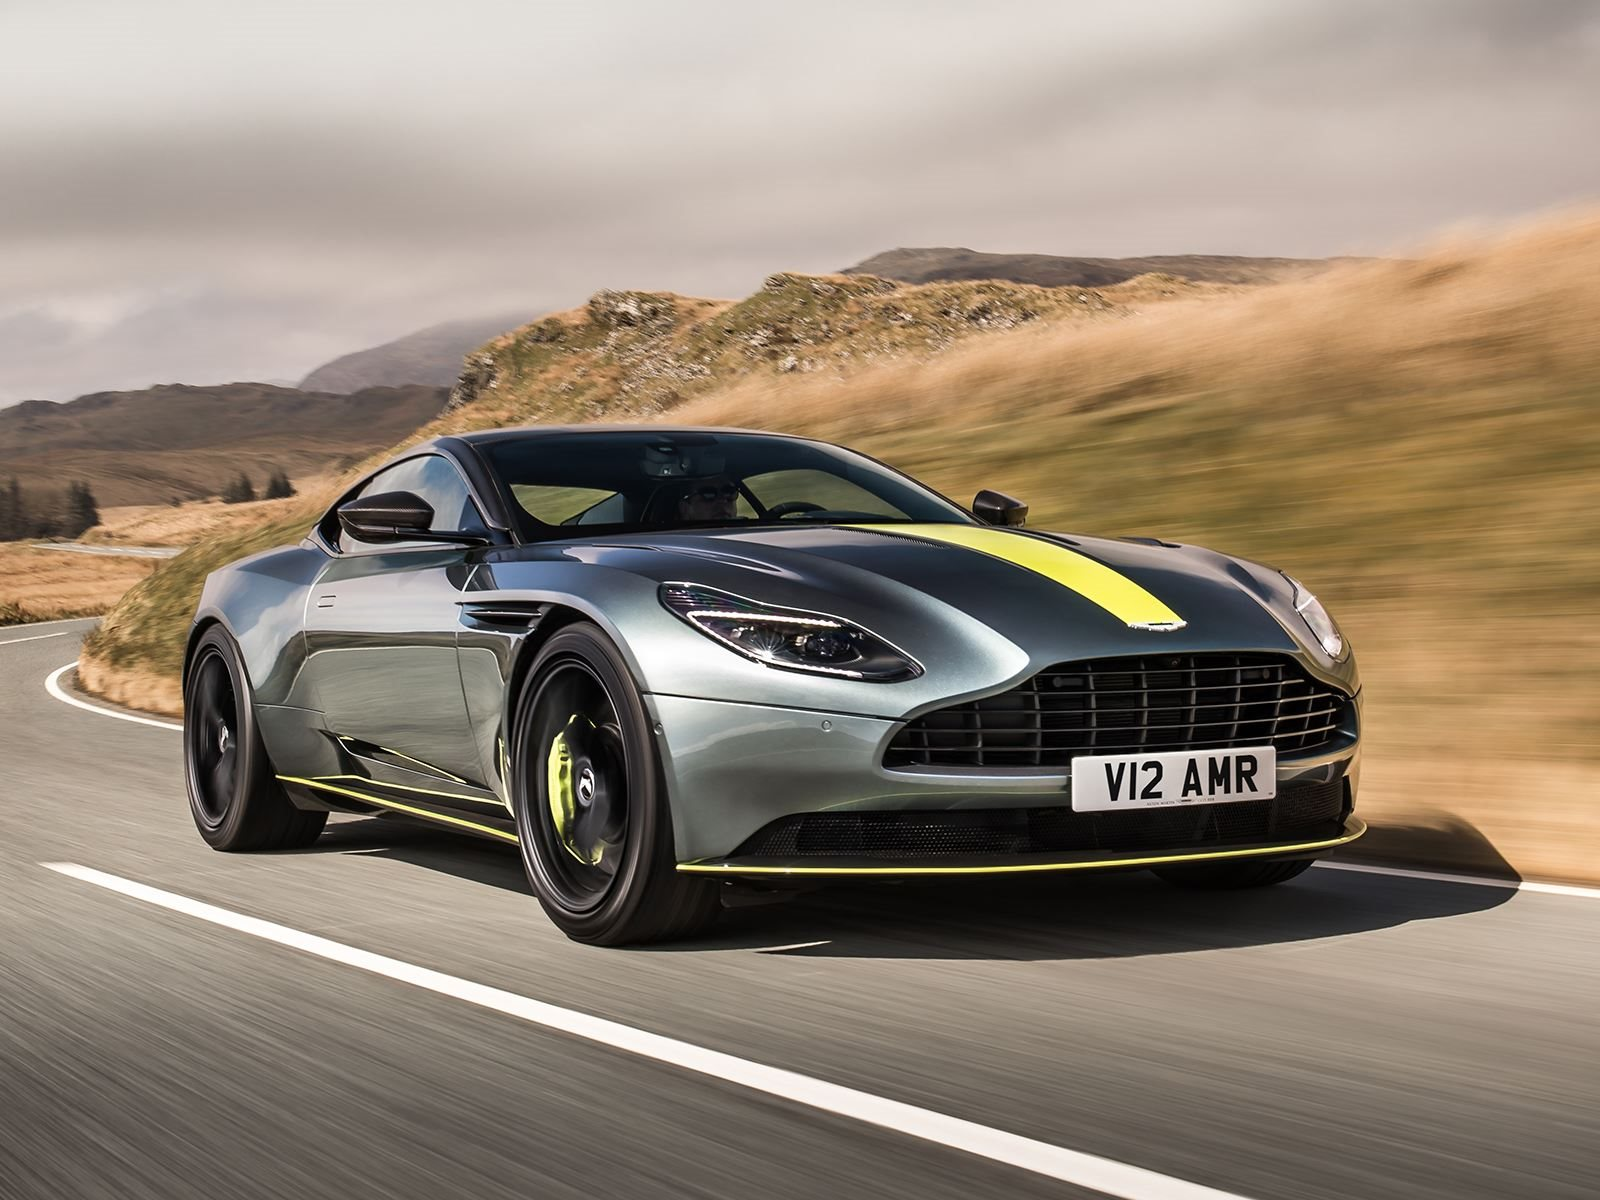 say hello to the new hardcore aston martin db11 amr - carbuzz